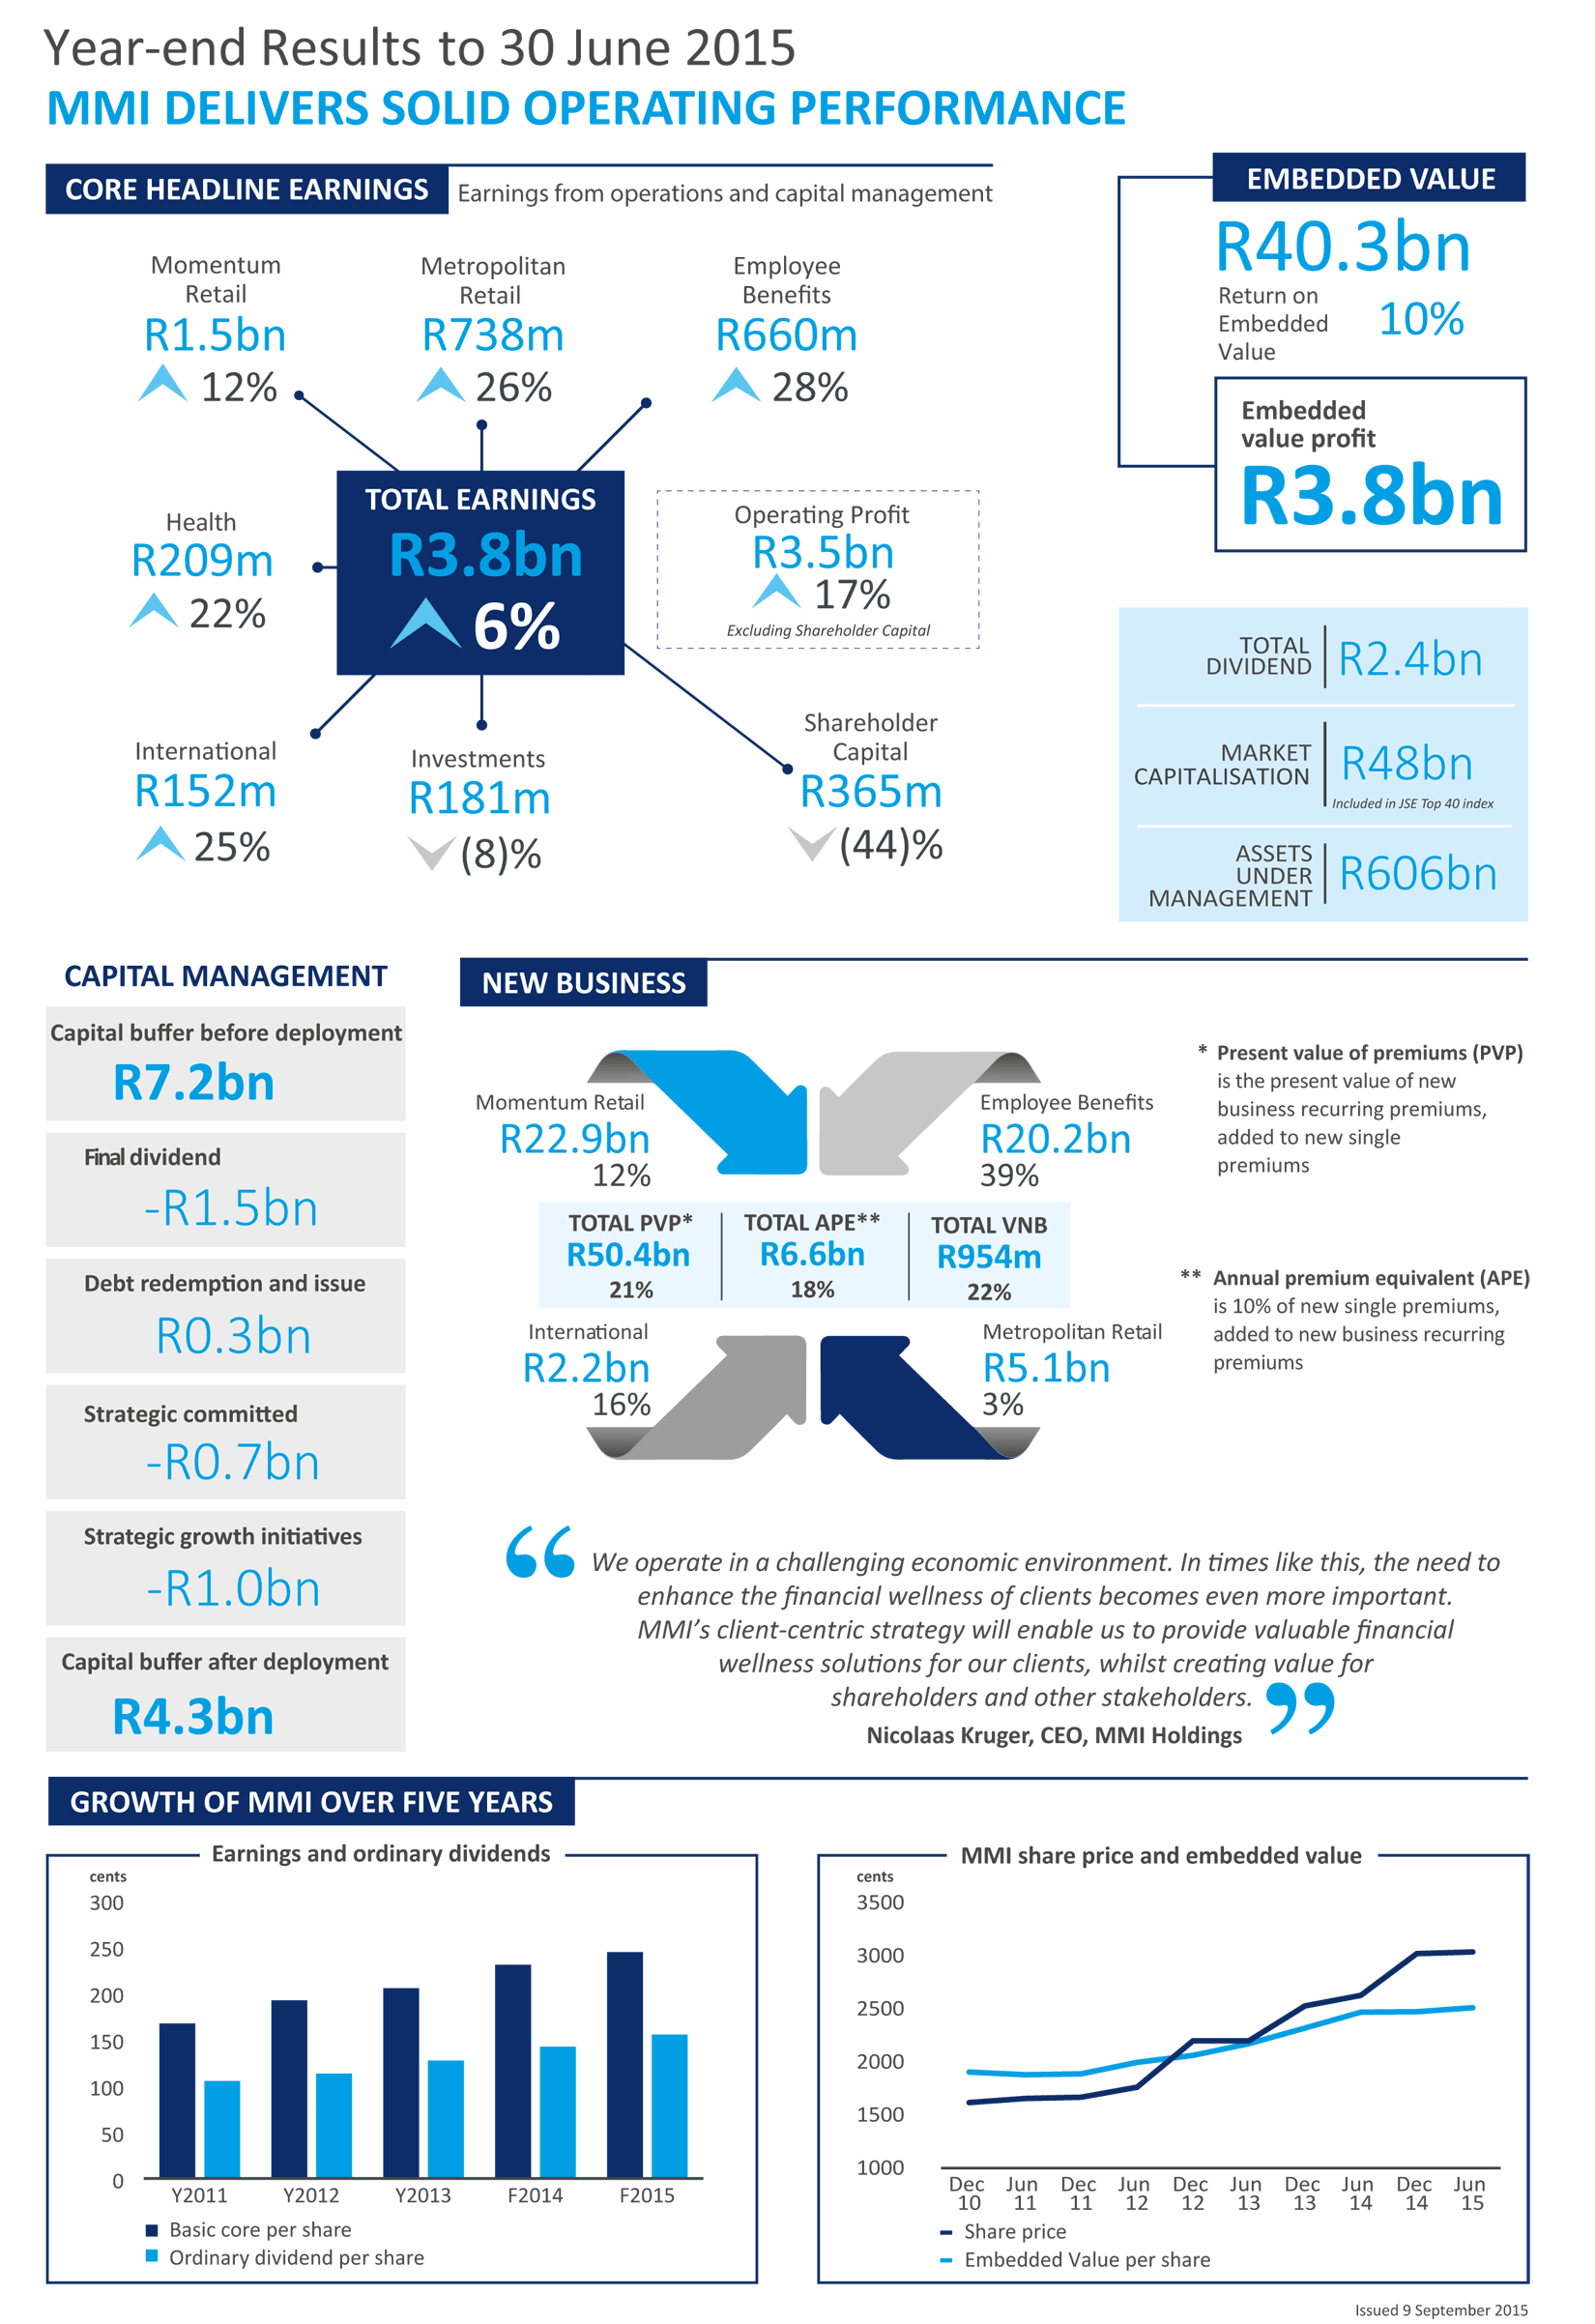 MMI Holdings 2015 Year-end Results Infographic